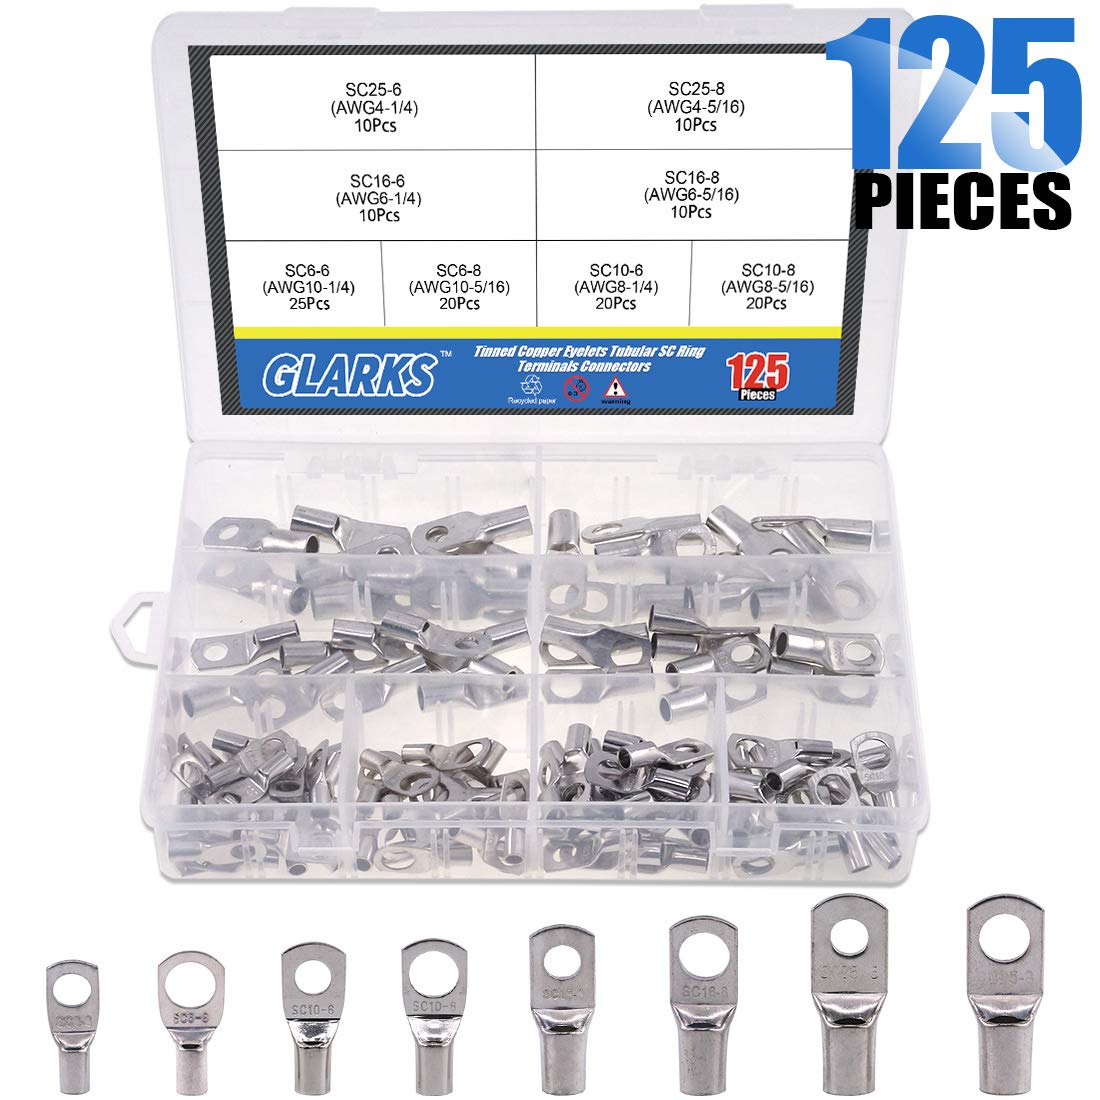 Glarks 125Pcs Marine Grade UL Approved Heavy Duty Tinned Copper Wire Lugs Battery Cable Ends Eyelets SC Ring Terminal Connectors Assortment Kit